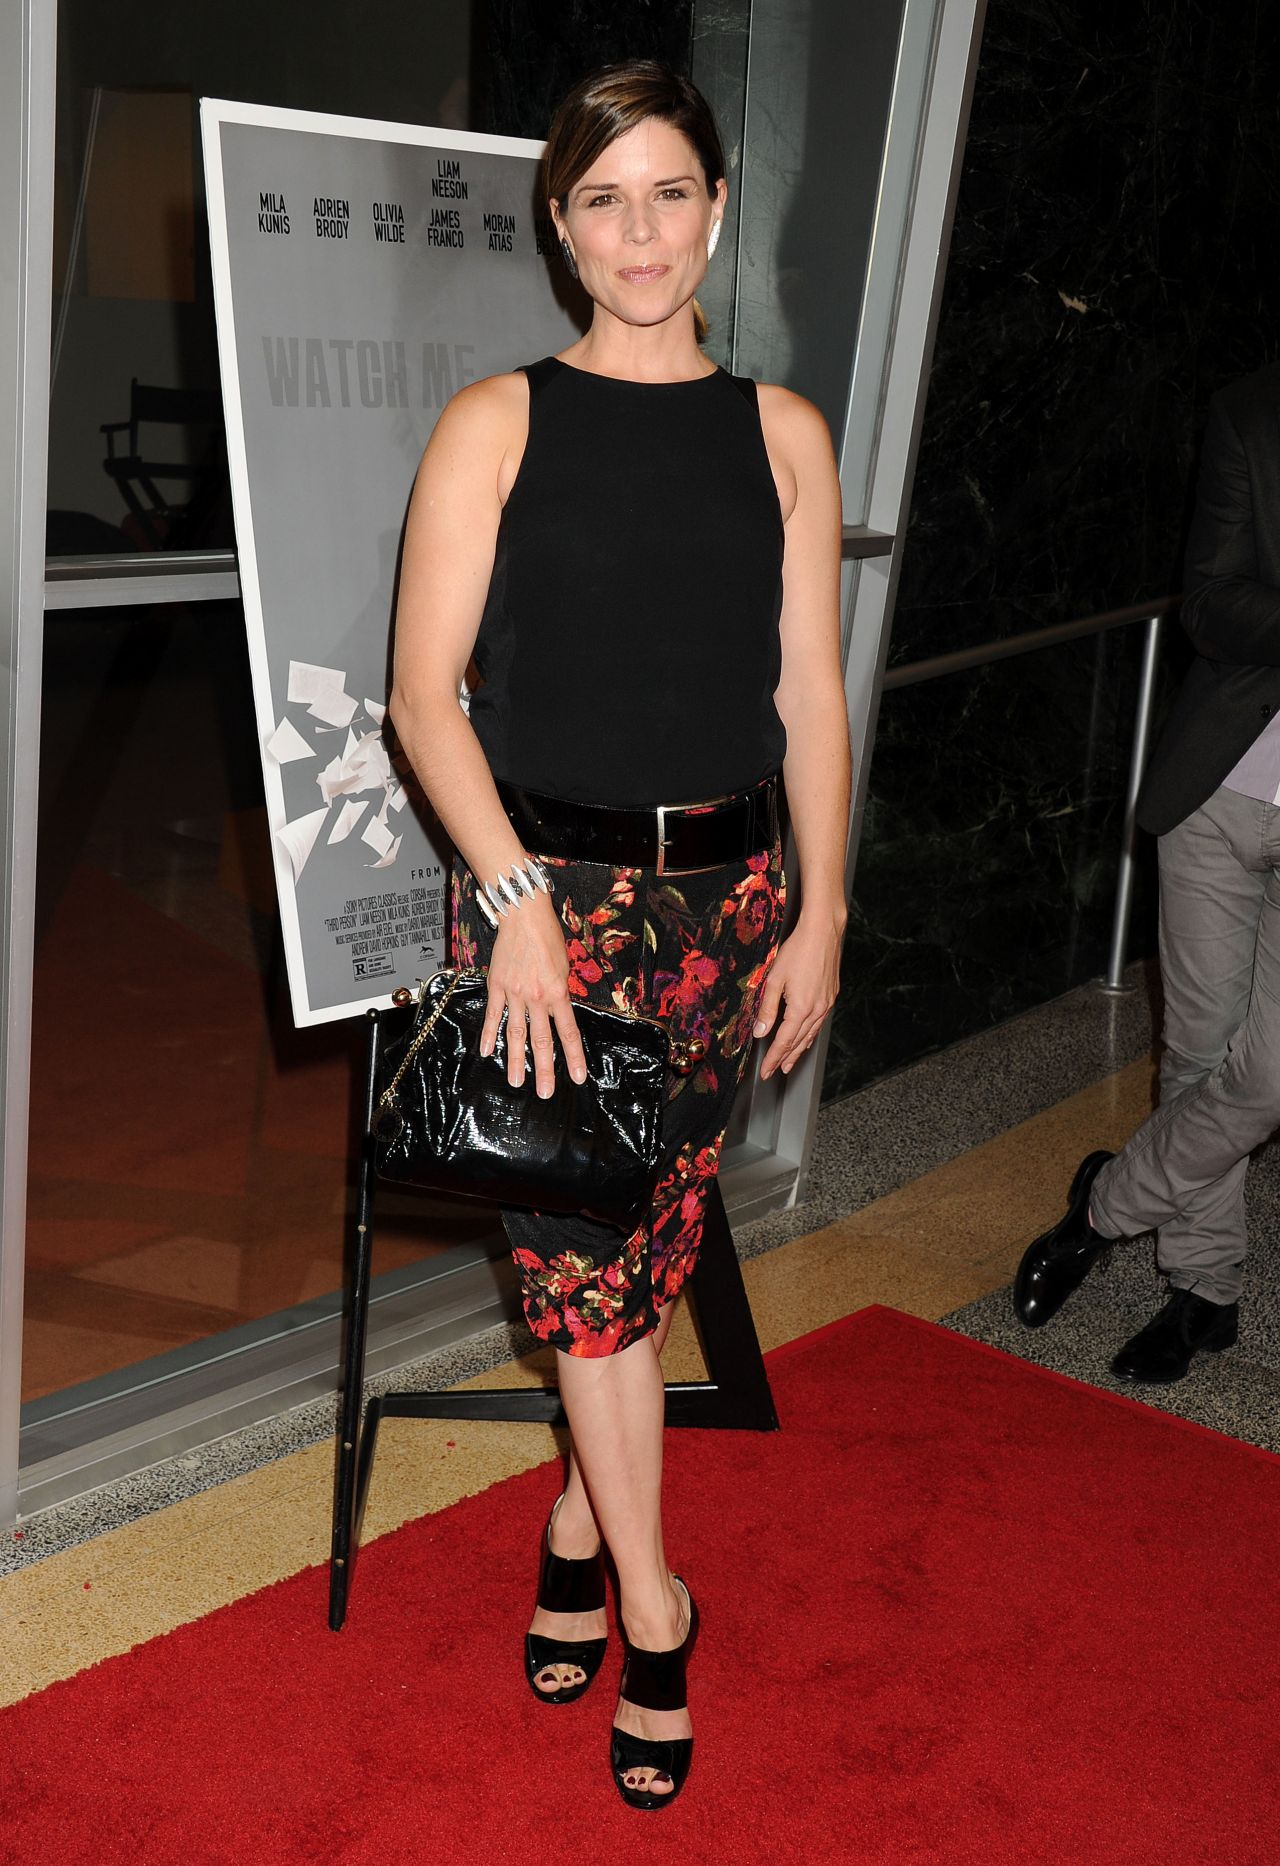 THIRD PERSON Premiere in Los Angeles – Neve Campbell